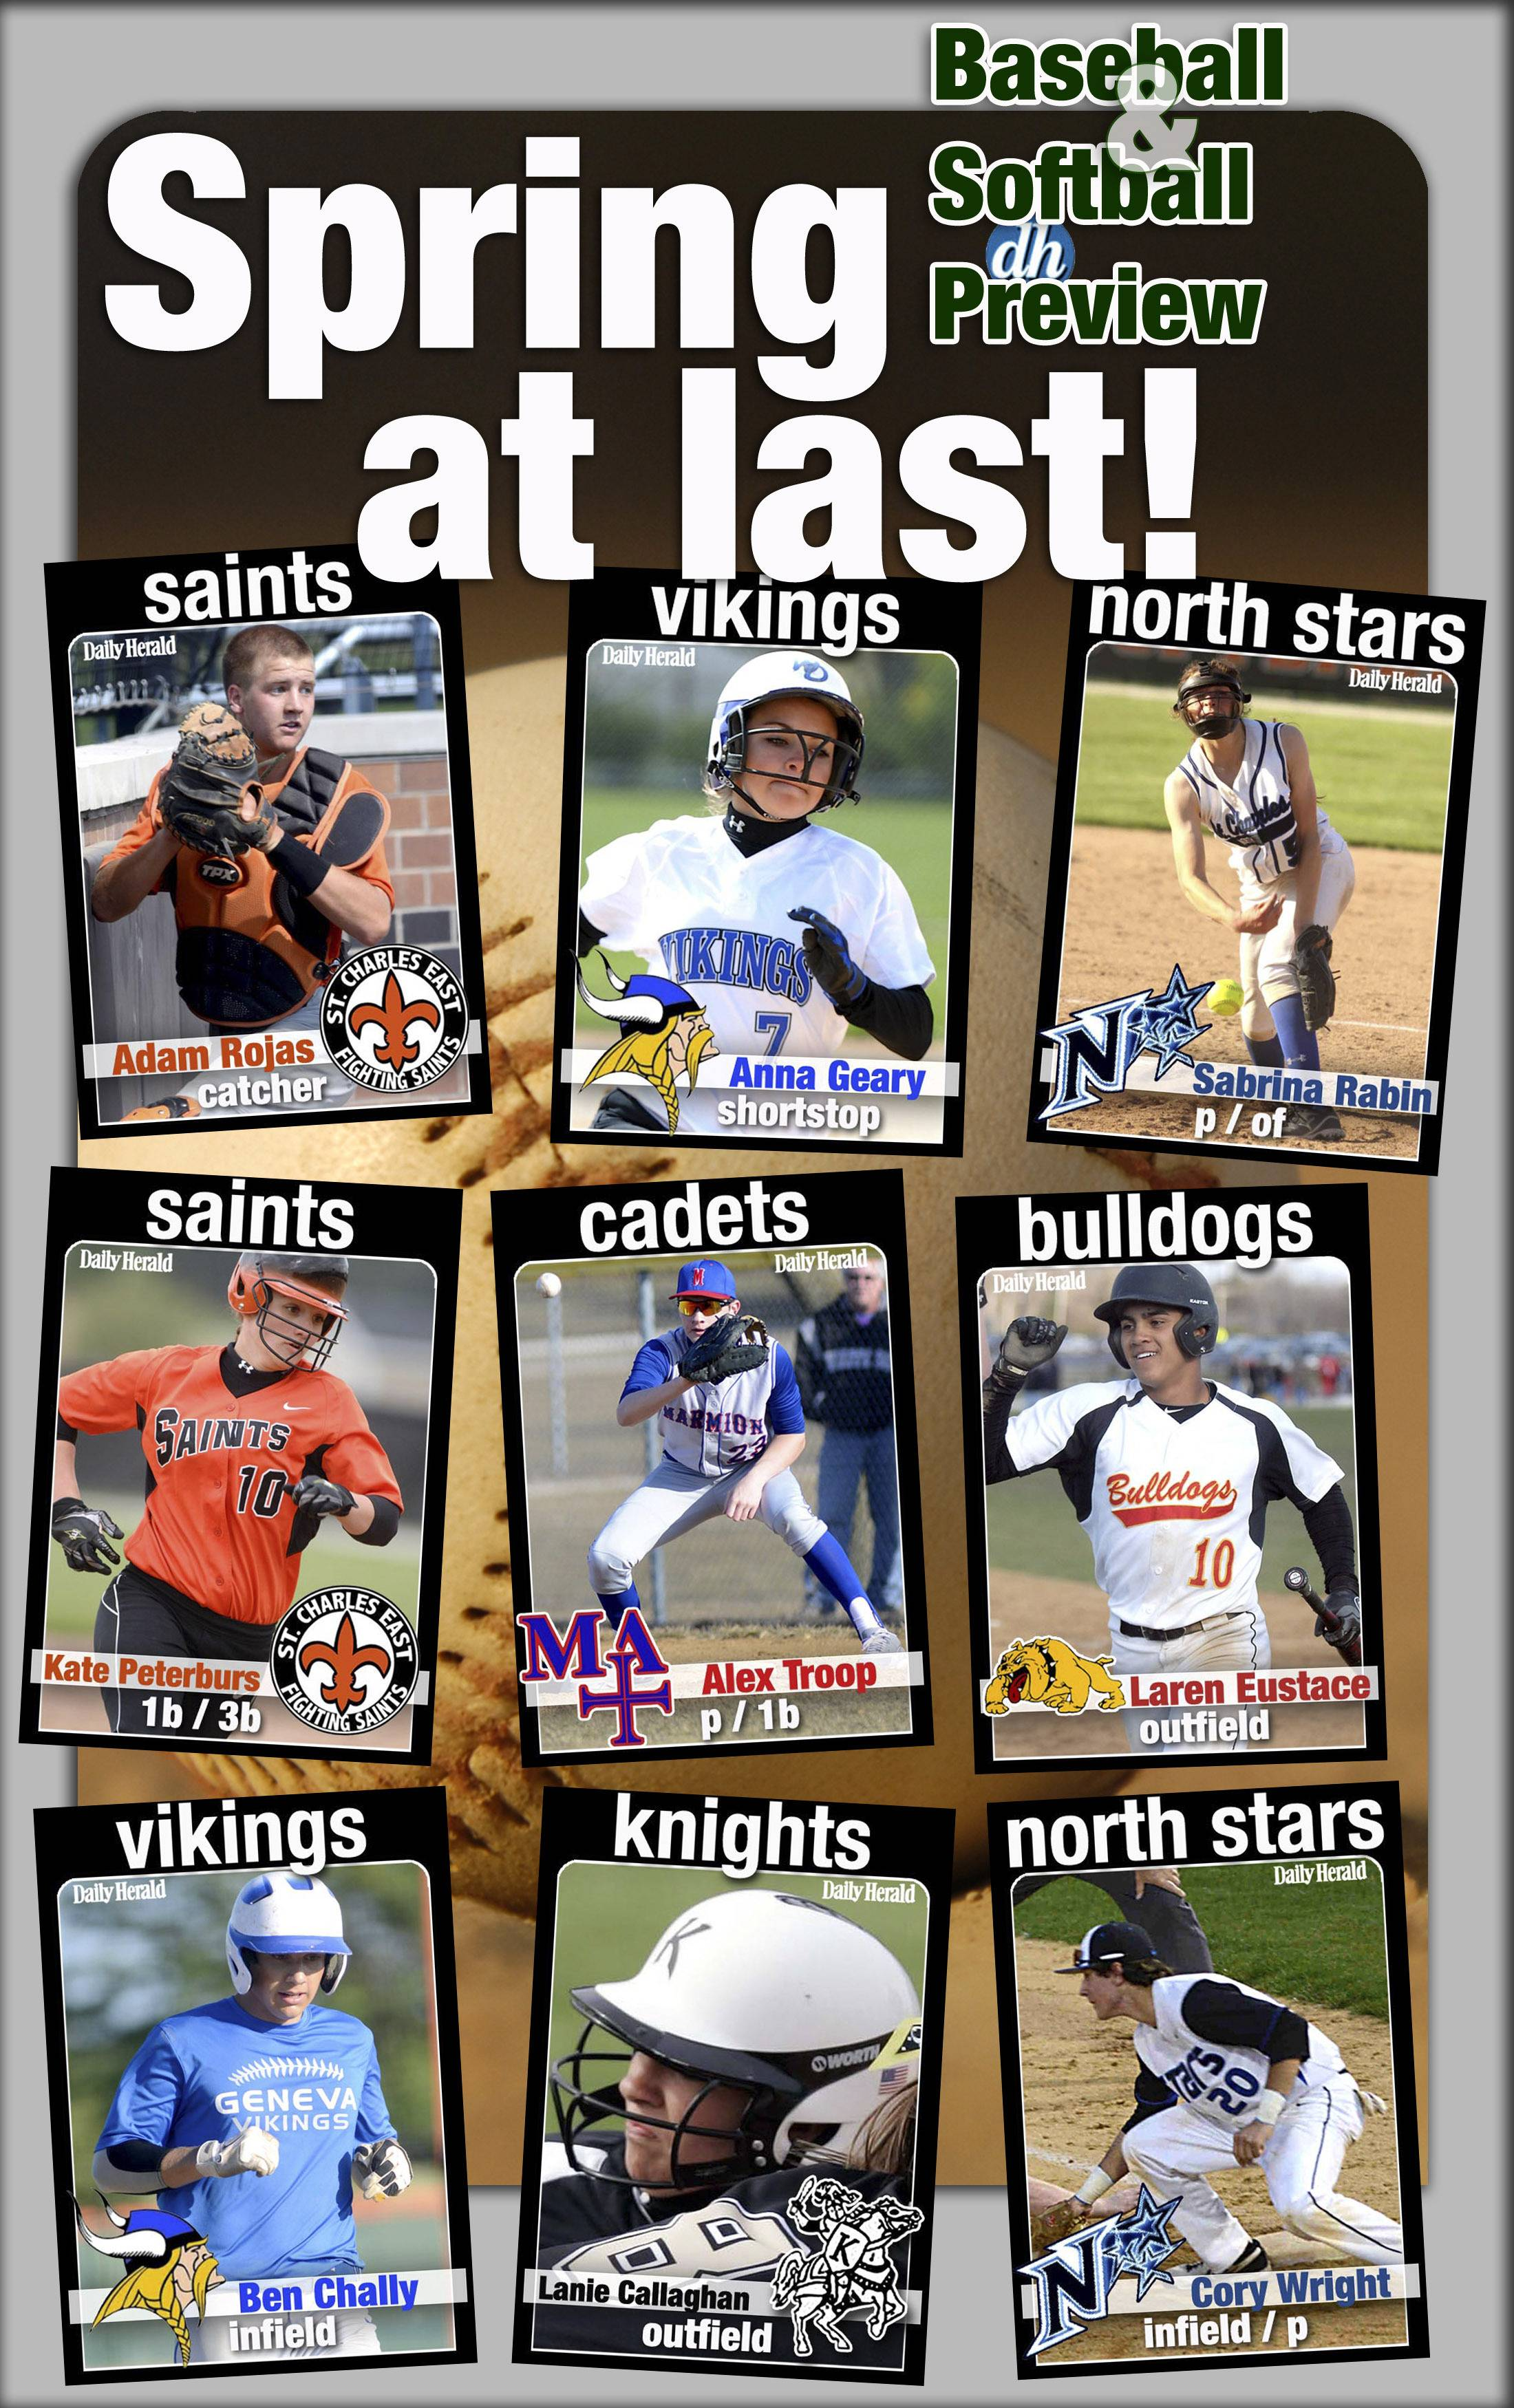 Daily Herald prep trading cards are back for 2014 and feature returning baseball and softball players in the Tri-Cities.